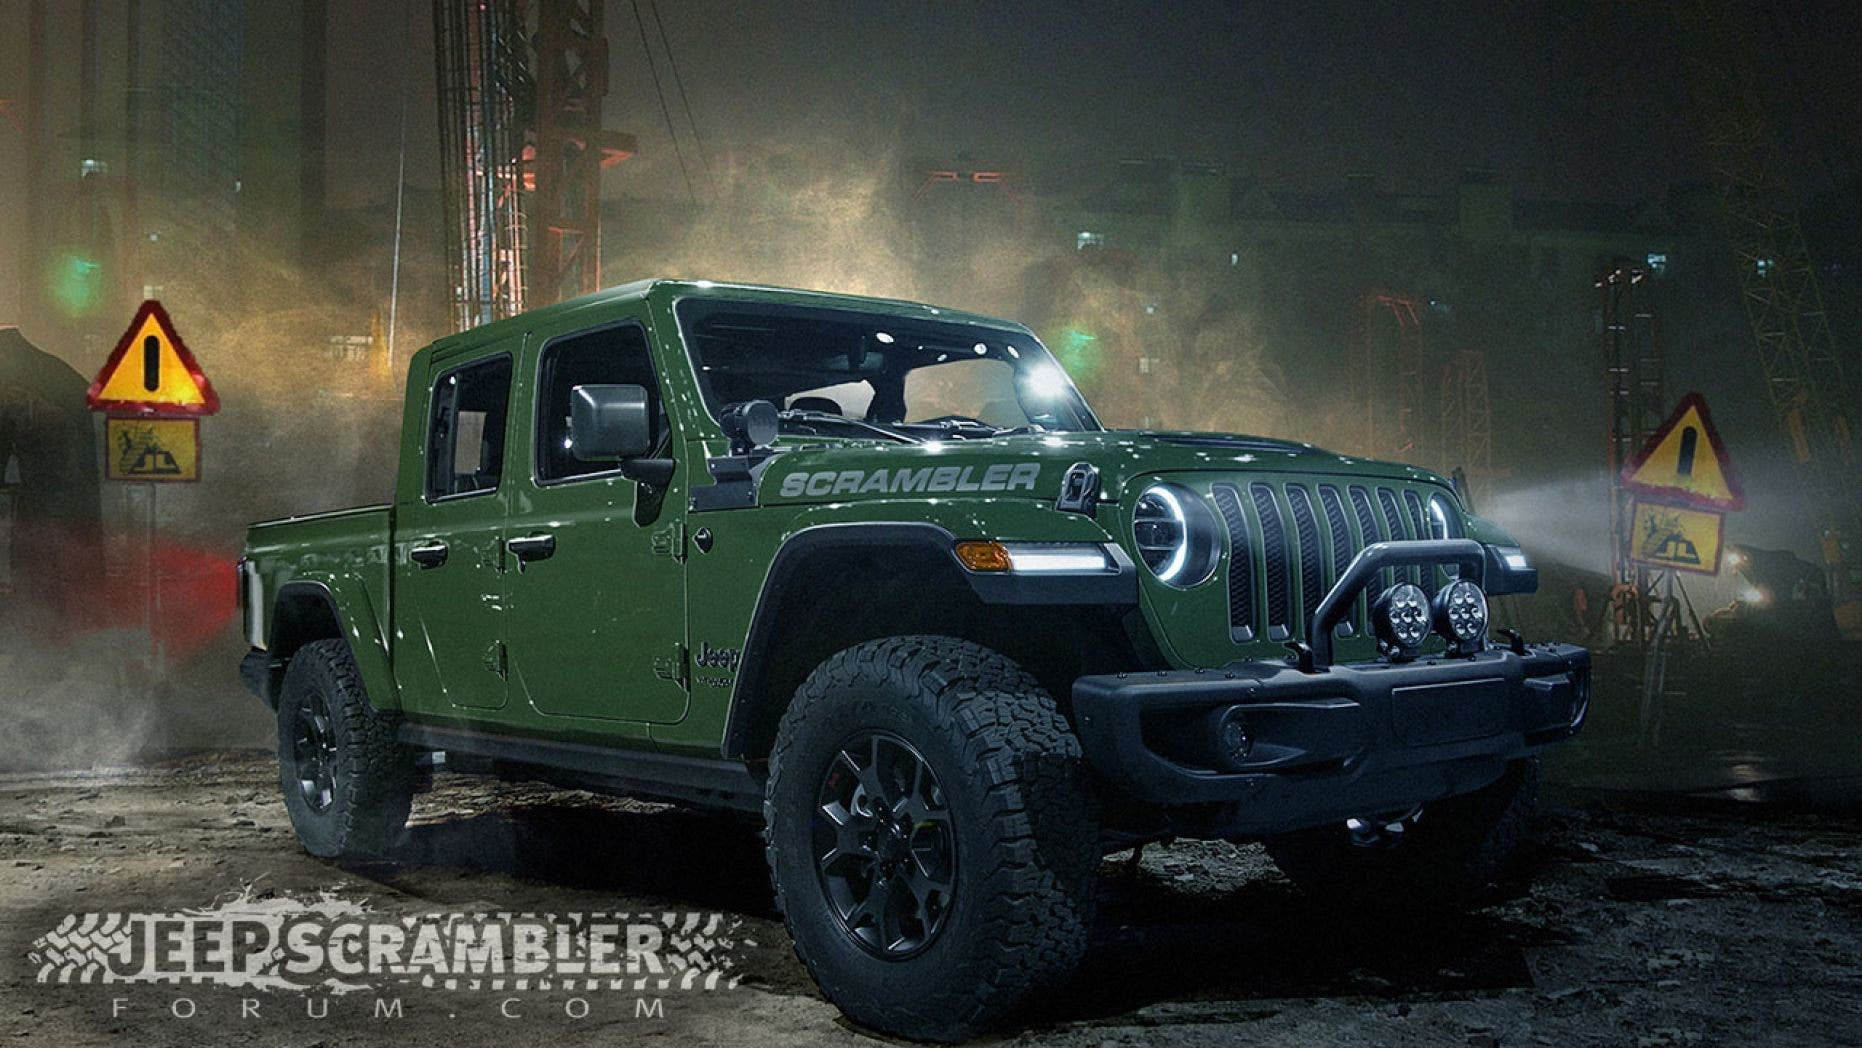 The Jeep Scrambler Forum Used Leaked Info And Photos Of Camouflaged Prototypes To Render What